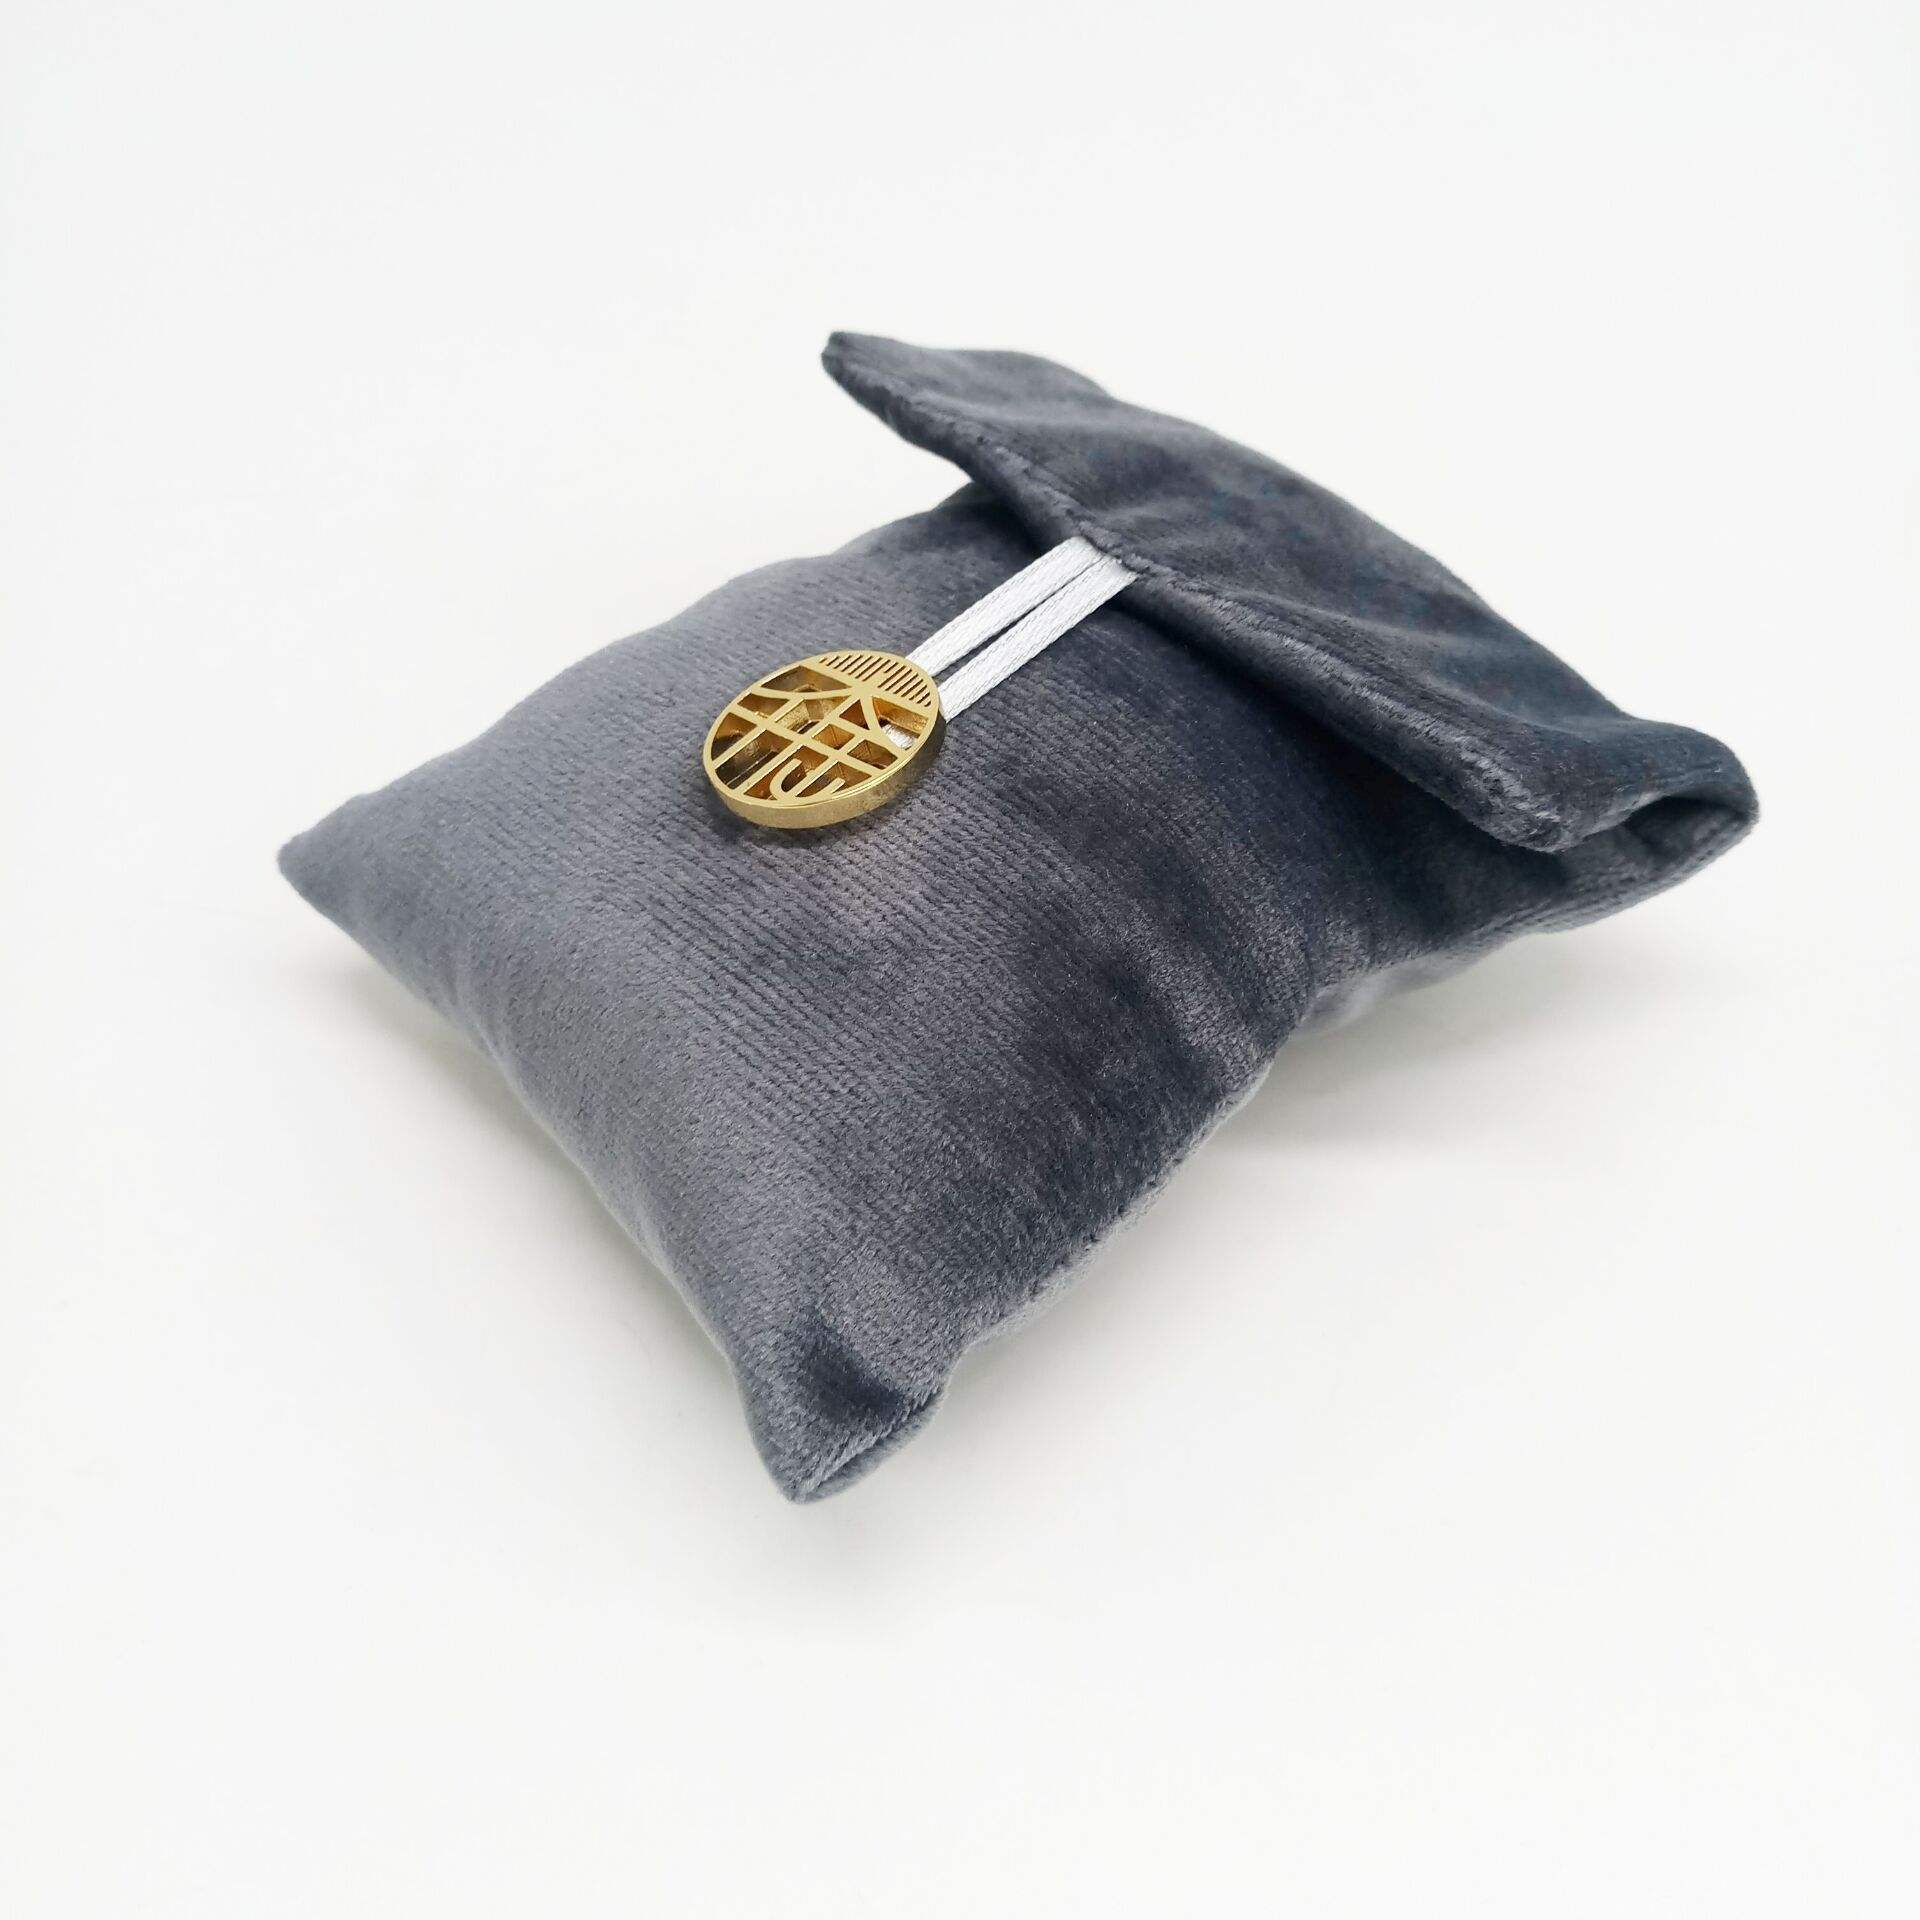 Custom Luxury Mini Suede Microfiber Envelope Jewelry Pouch for Necklace Earrings Rings Bracelet Storage Bag